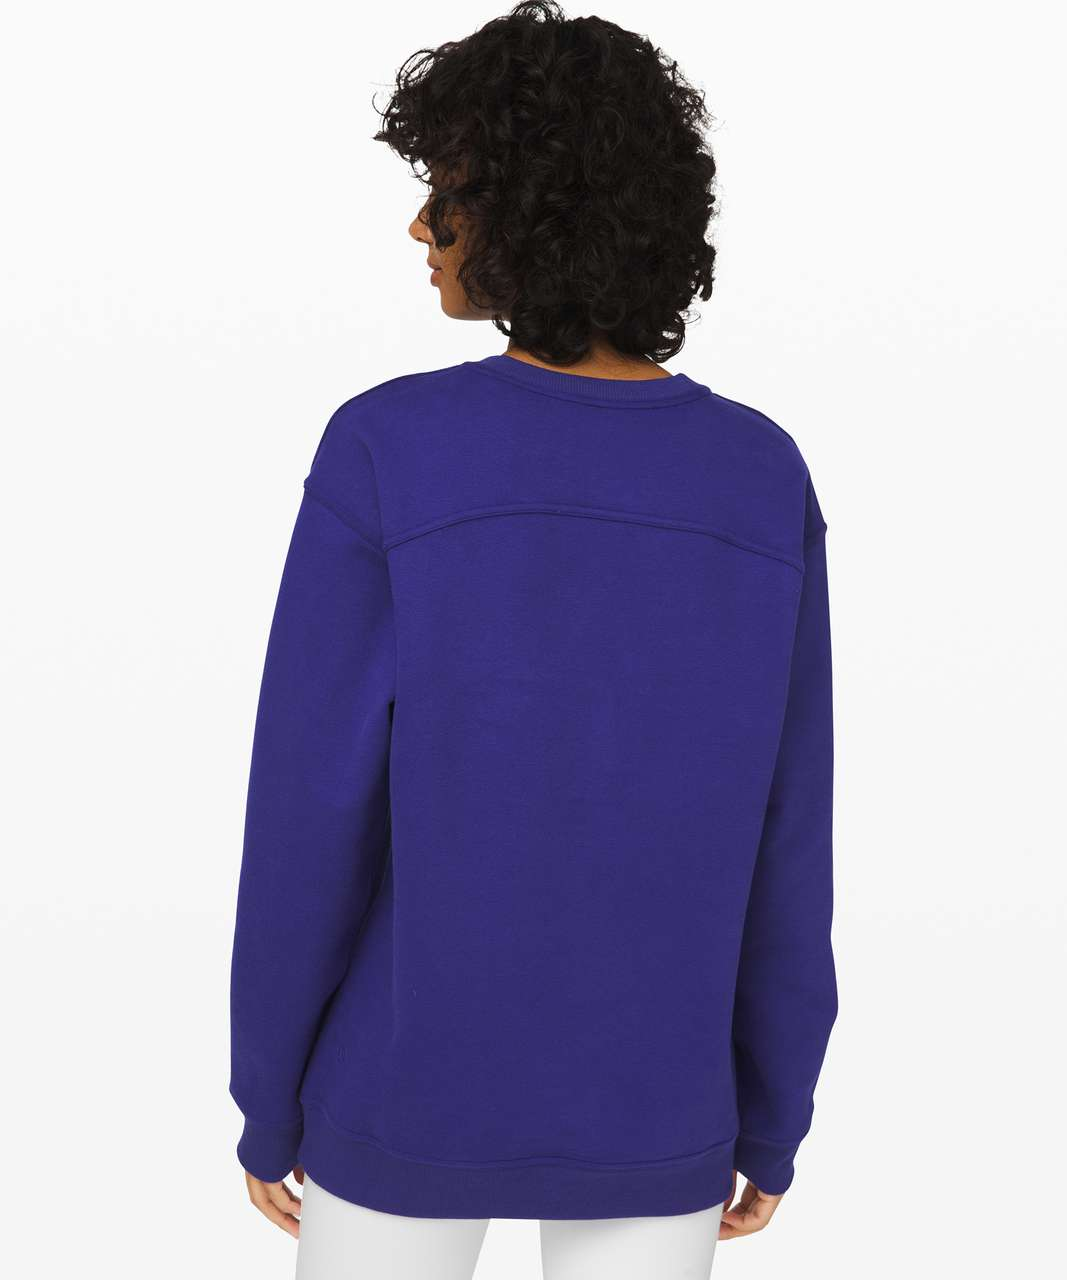 Lululemon All Yours Crew - Larkspur